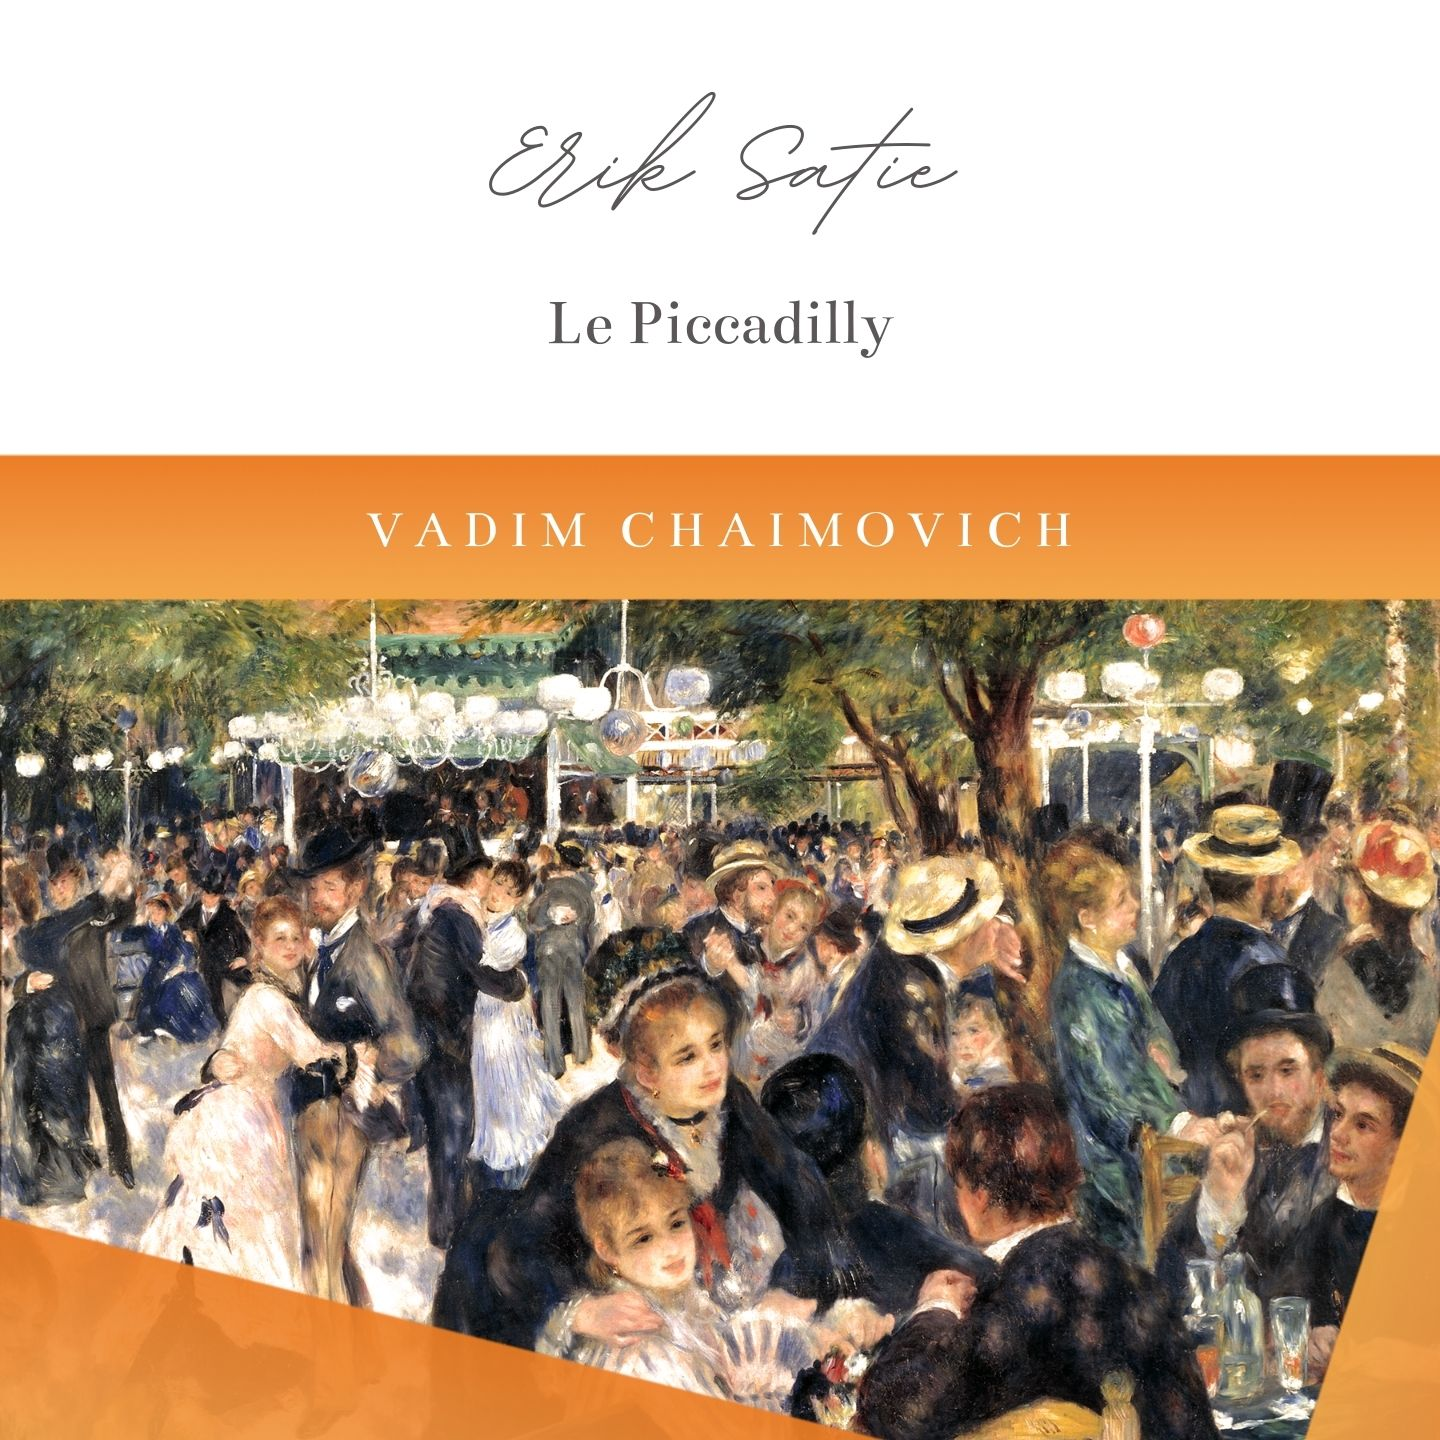 Le Piccadilly,